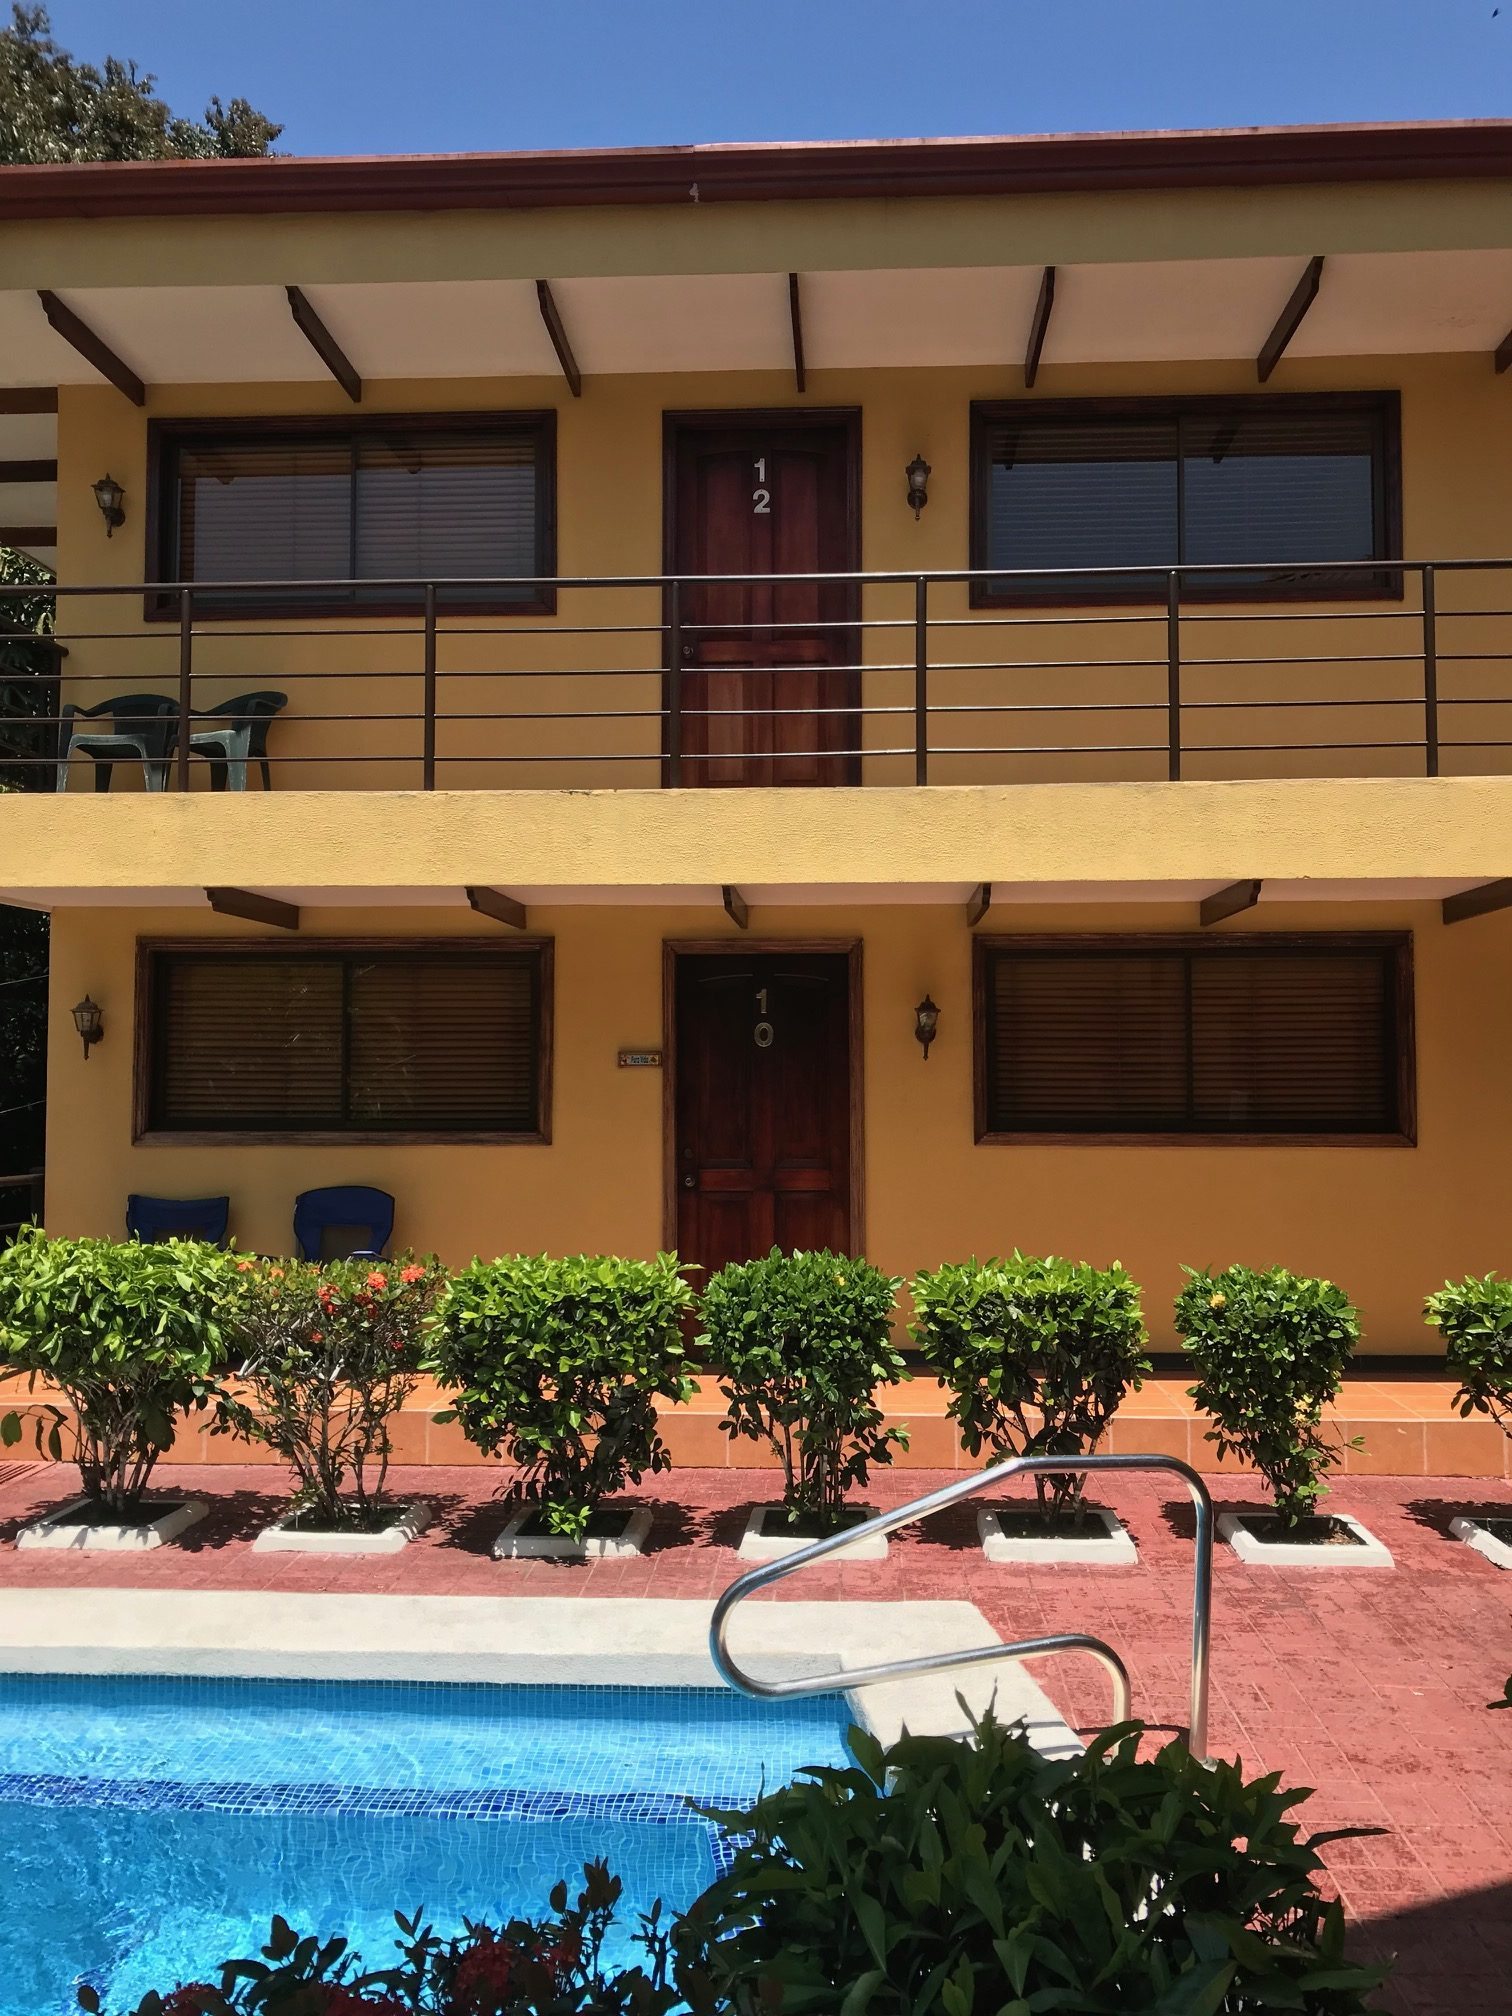 CONDO – 2 Bedroom Condos 5 Min From Beach With Pool!!